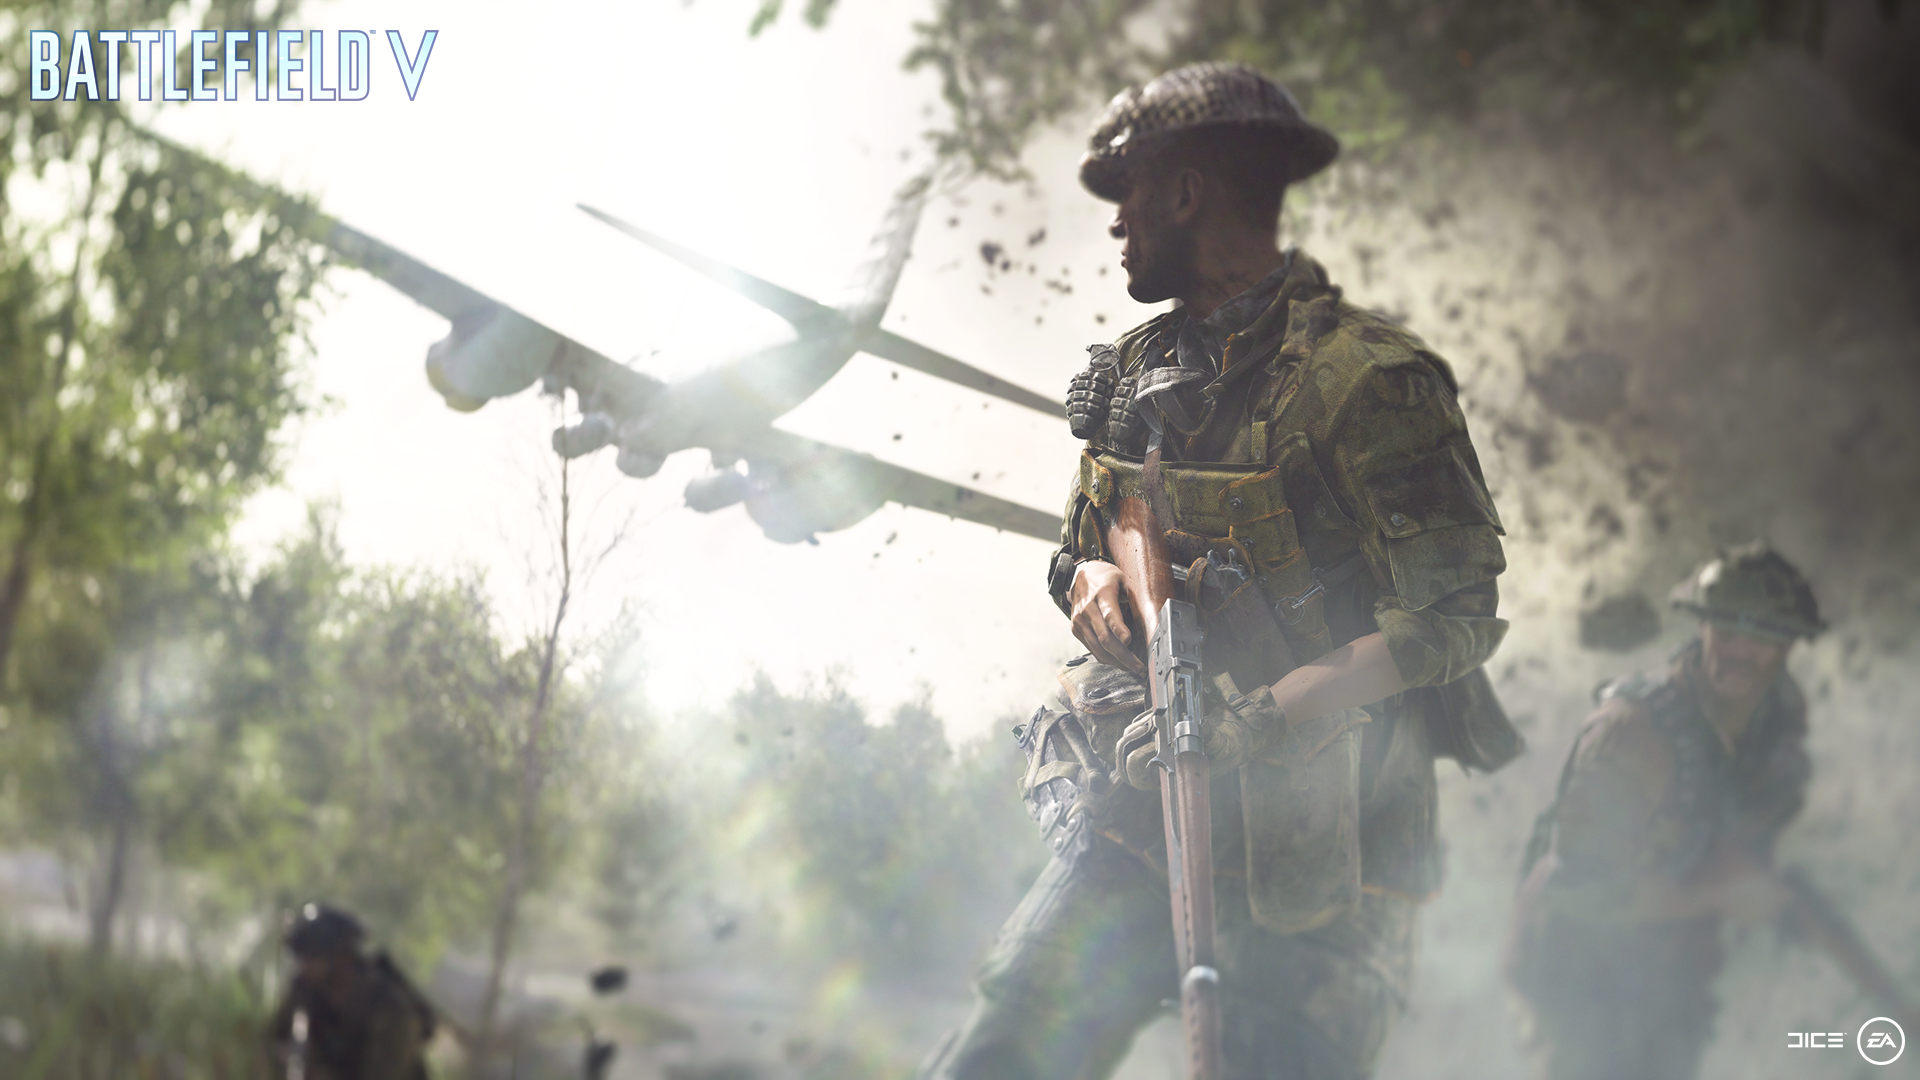 Battlefield V review: It feels like the best is yet to come